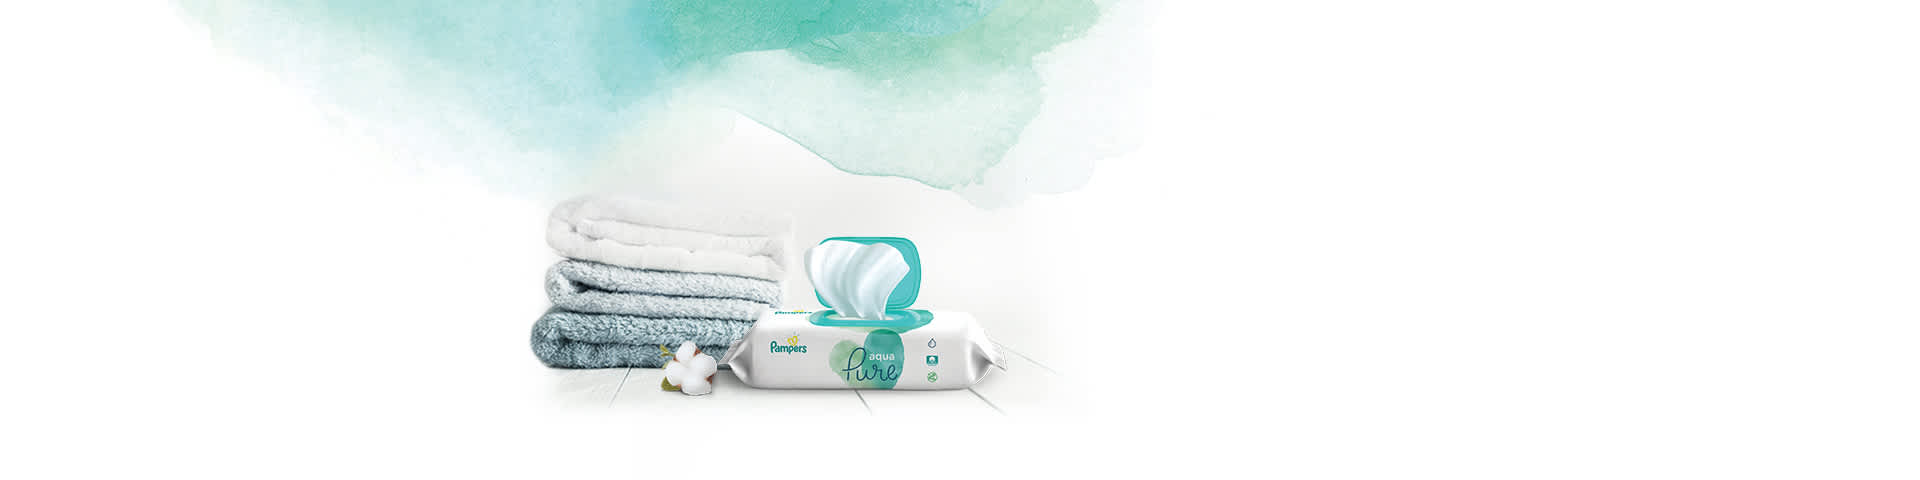 Pampers Aqua Pure Wipes